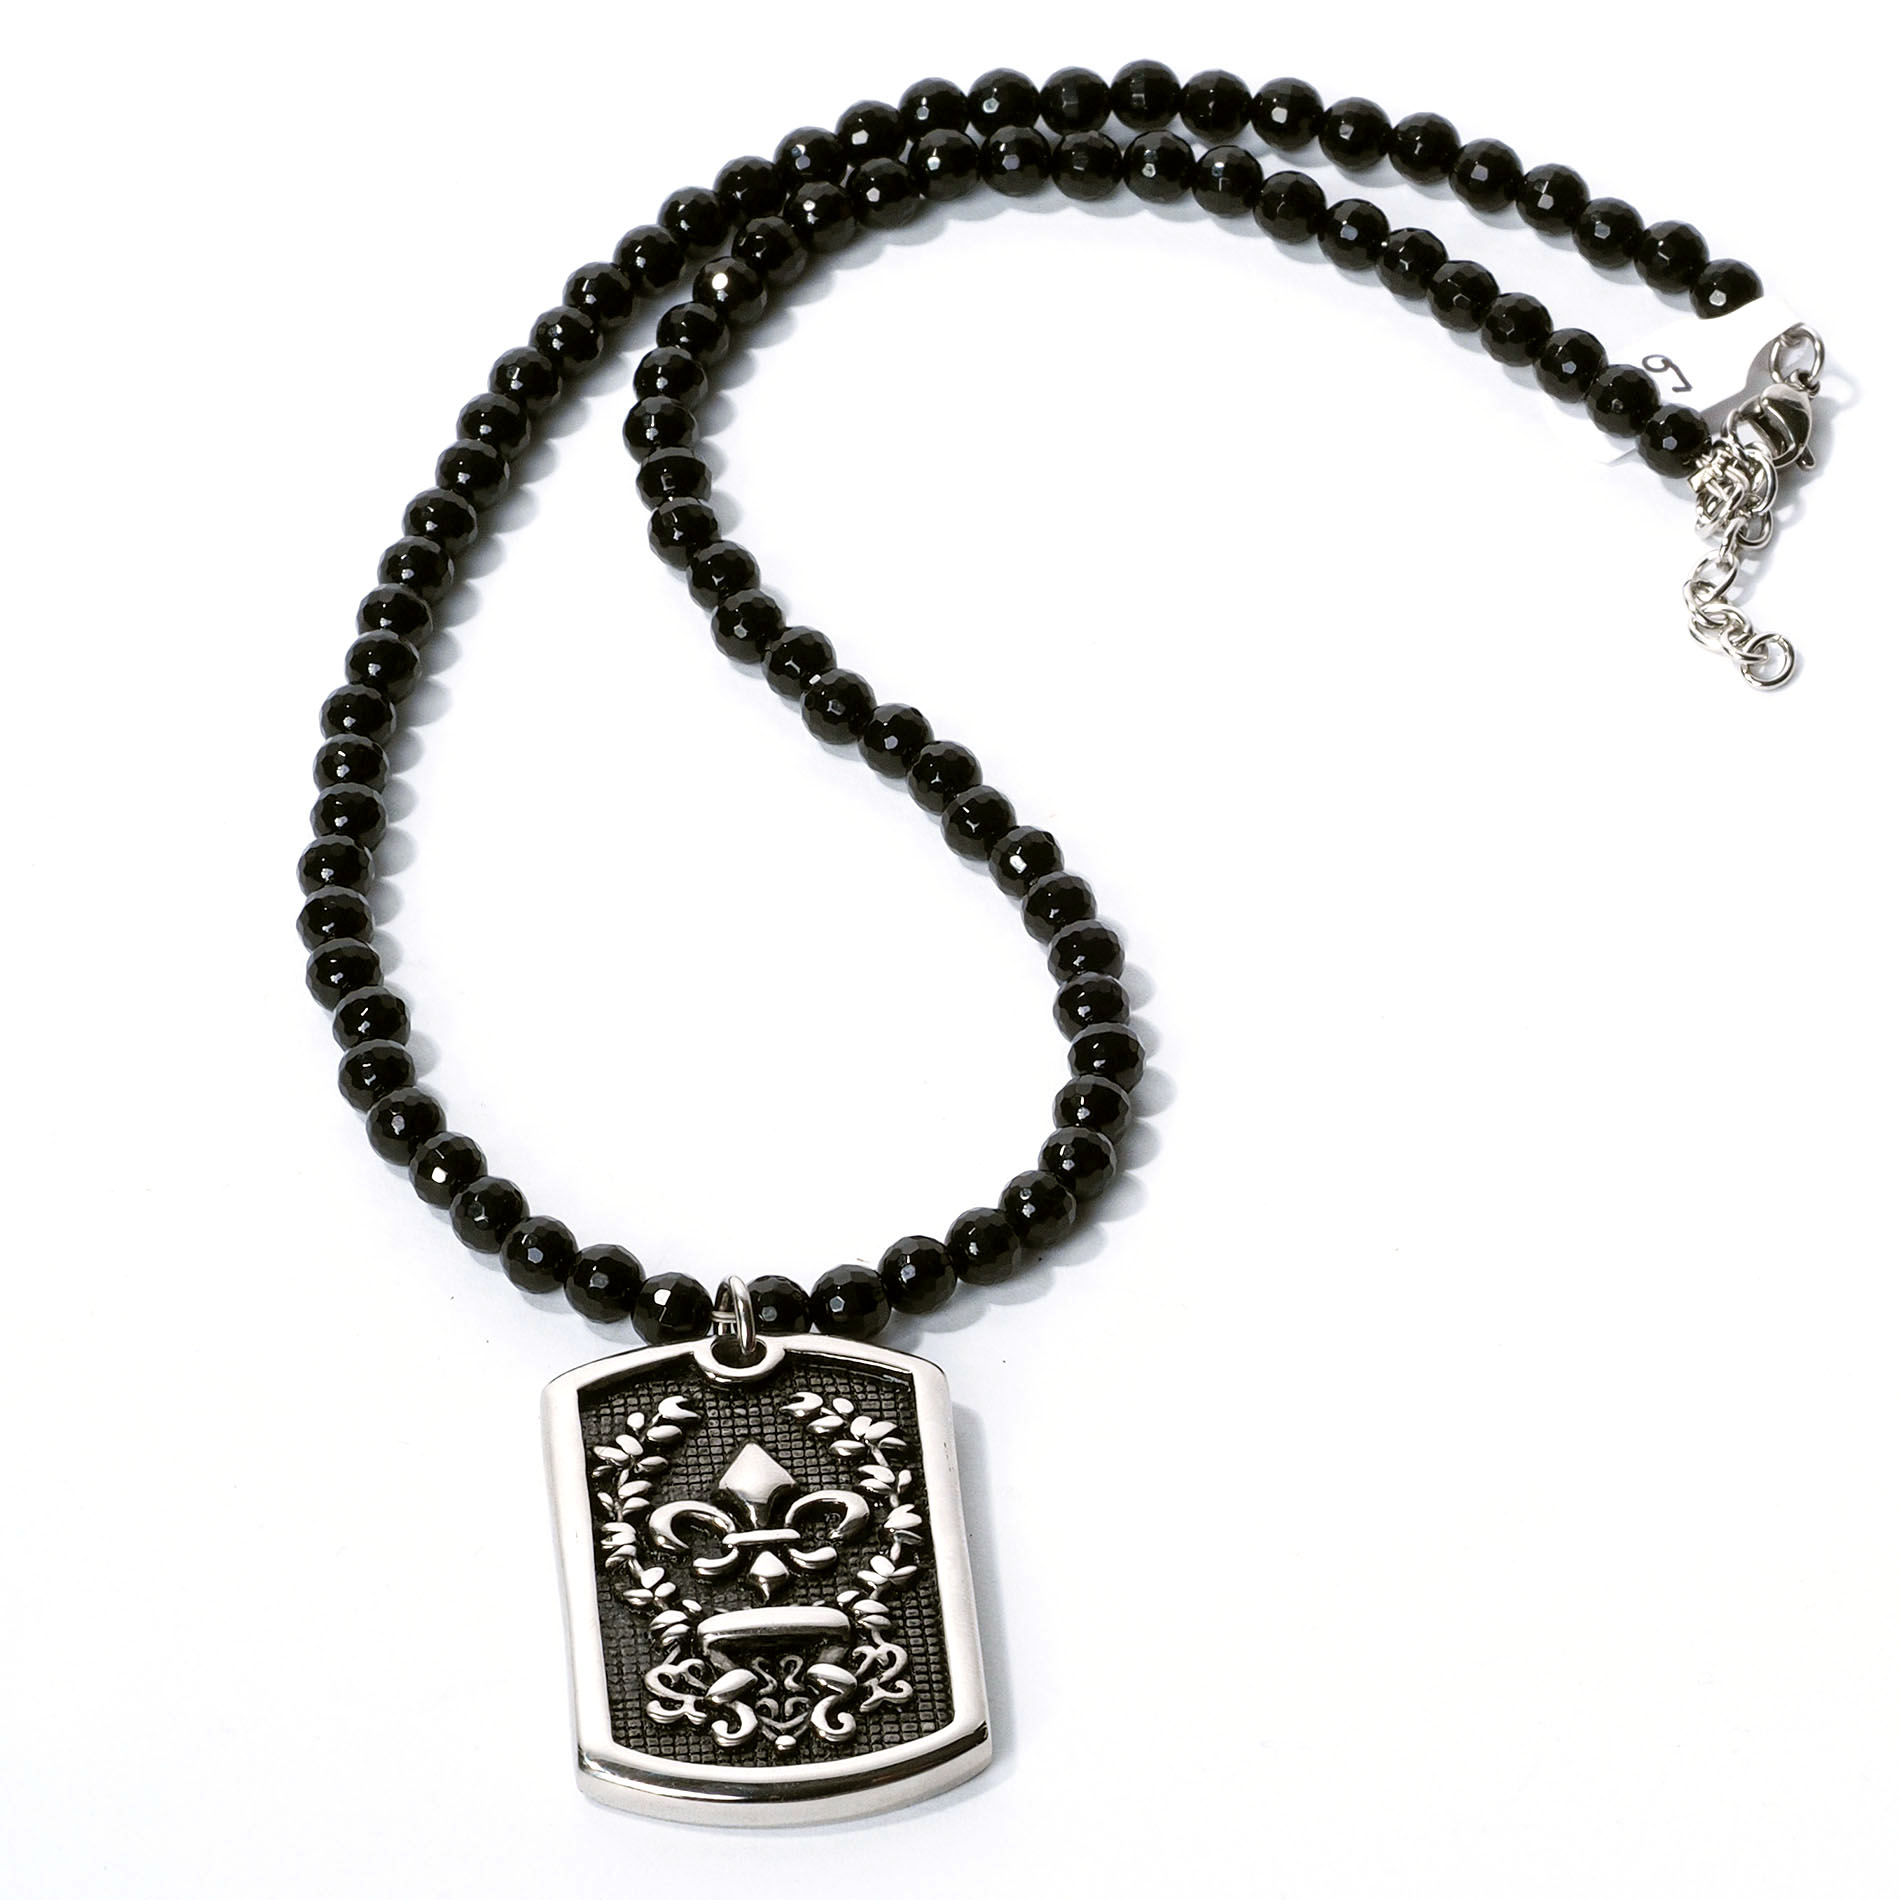 Rad rocks necklace onyx facet plate lilie at thunderbike shop for Irish jewelry stores in nj